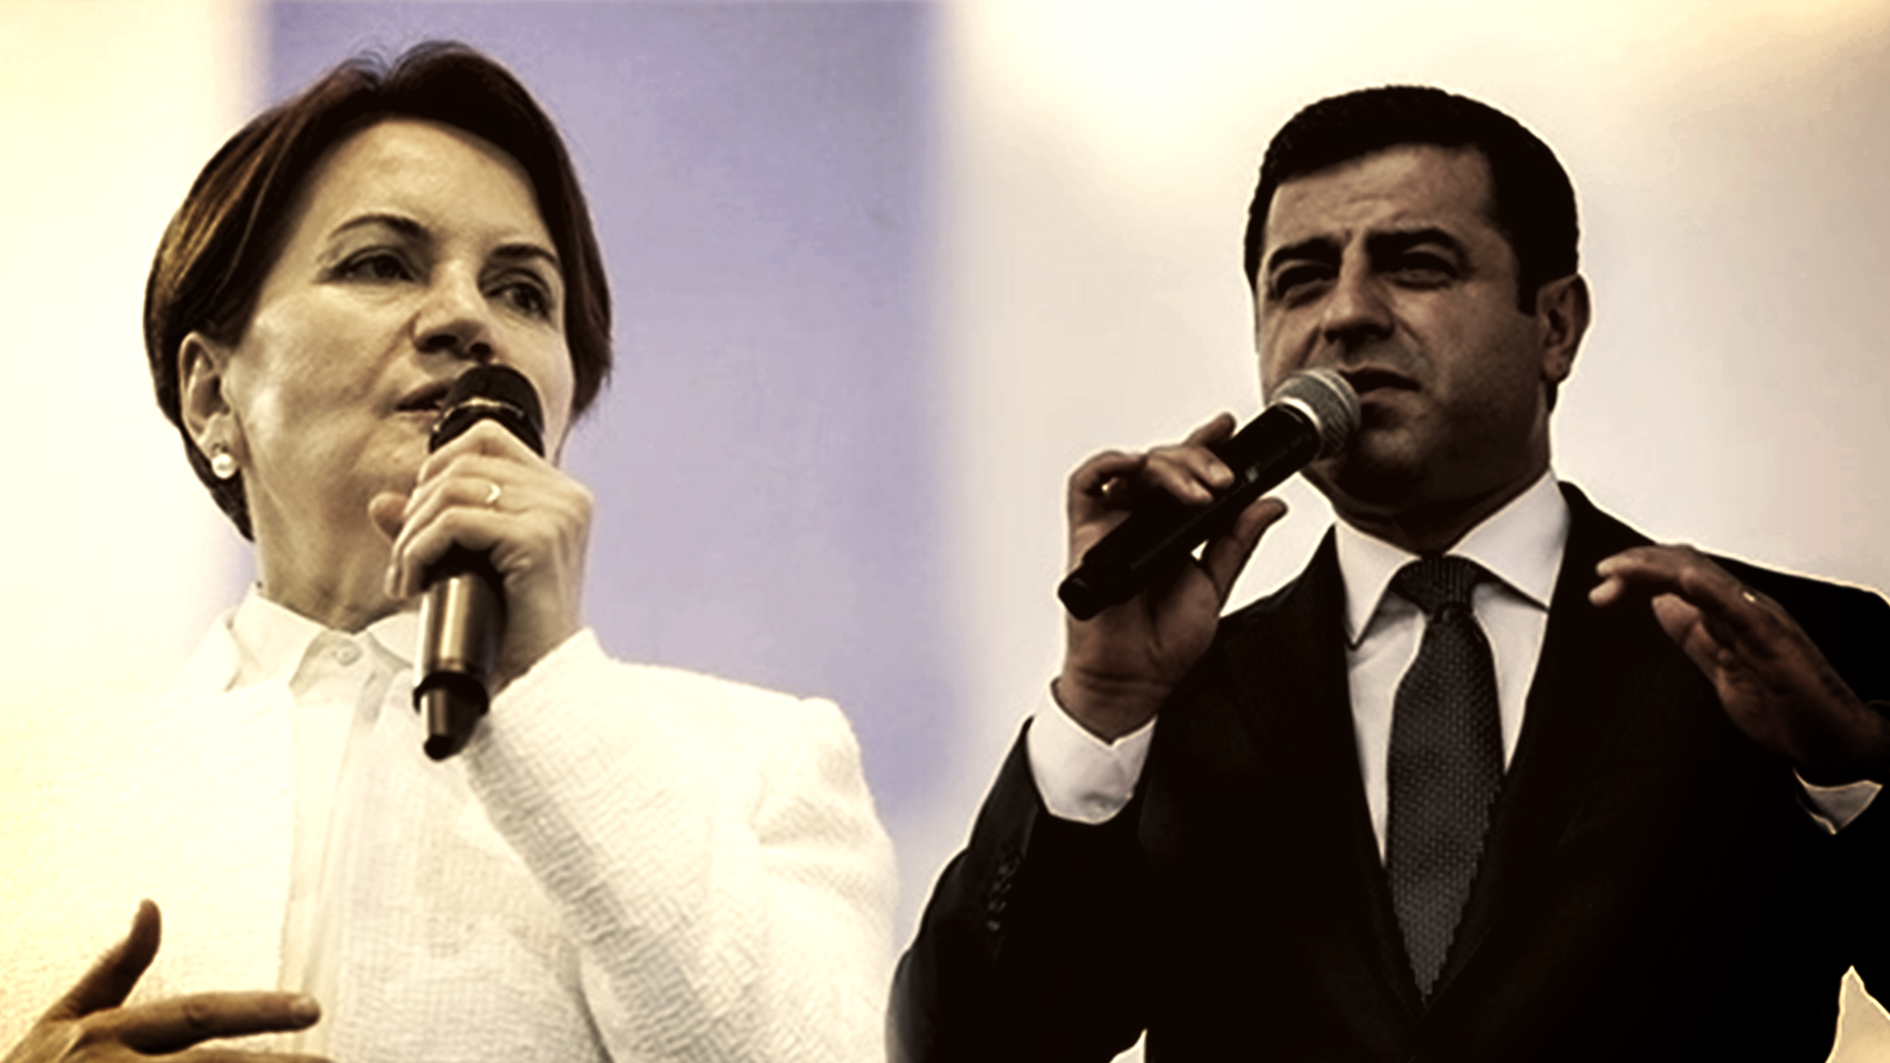 İP'ten HDP'ye destek!